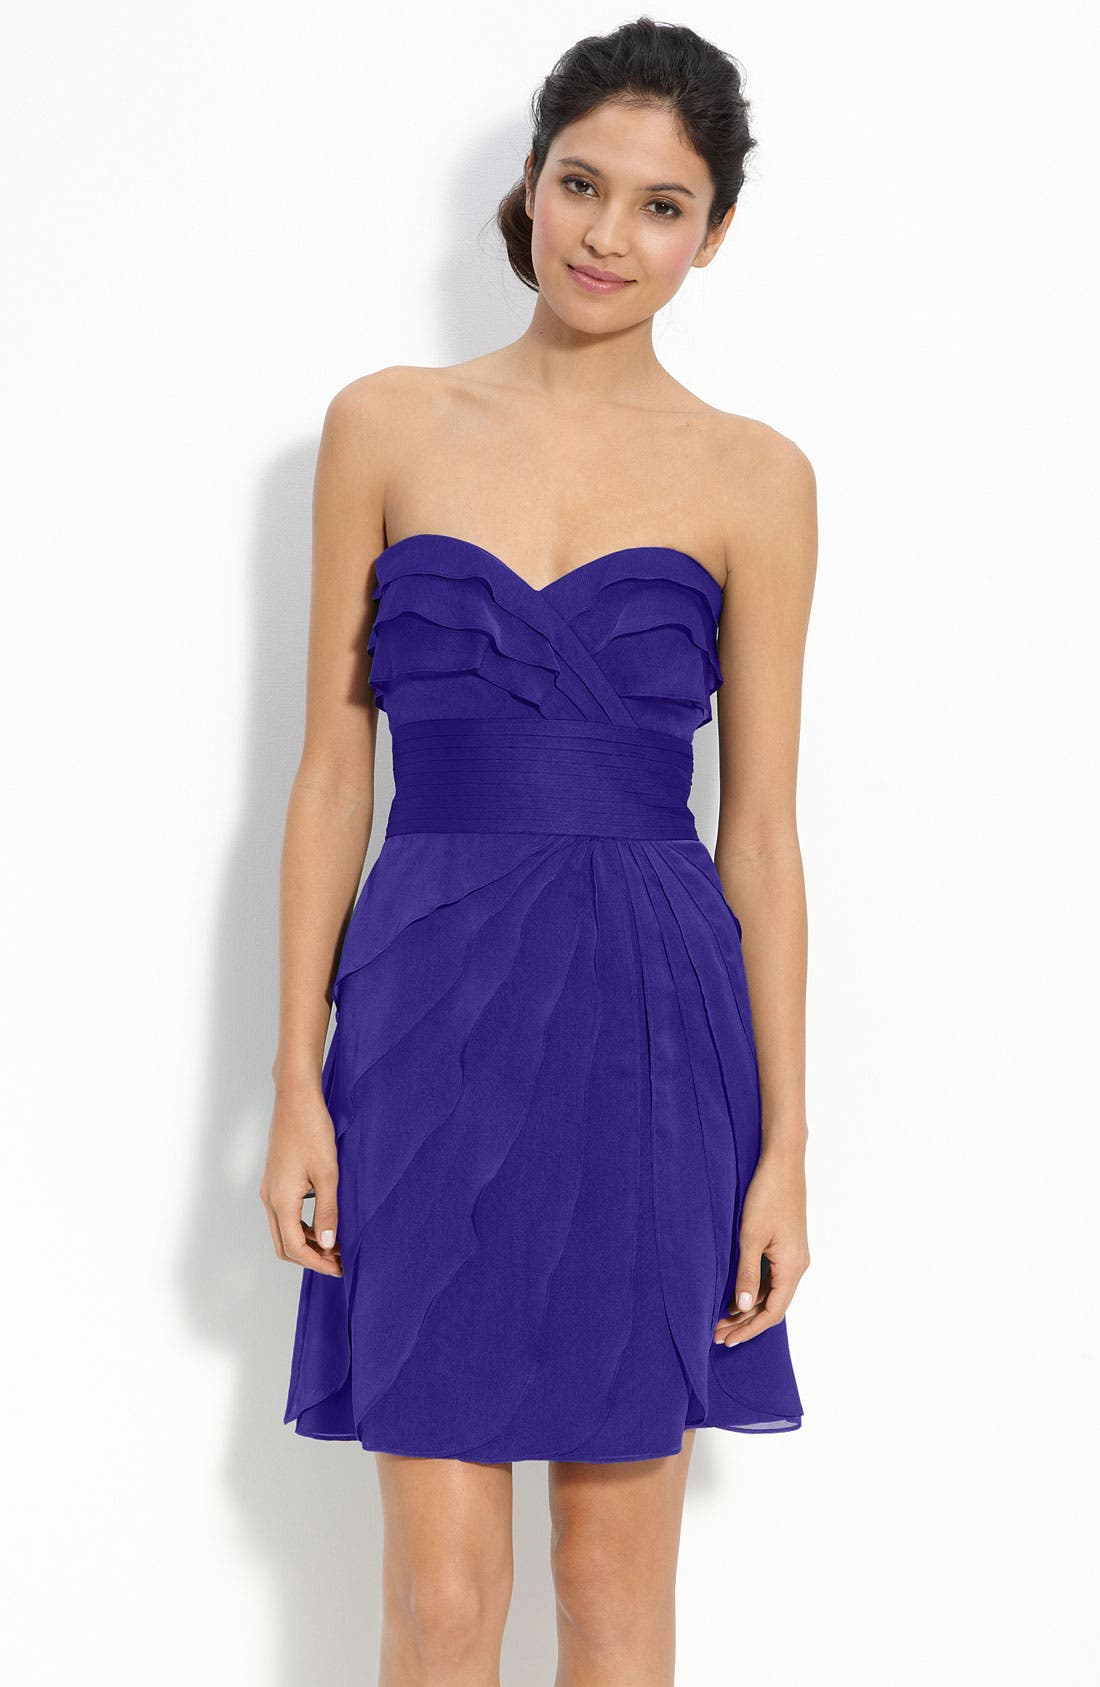 Main Image - Adrianna Papell Tiered Iridescent Chiffon Dress (Petite)